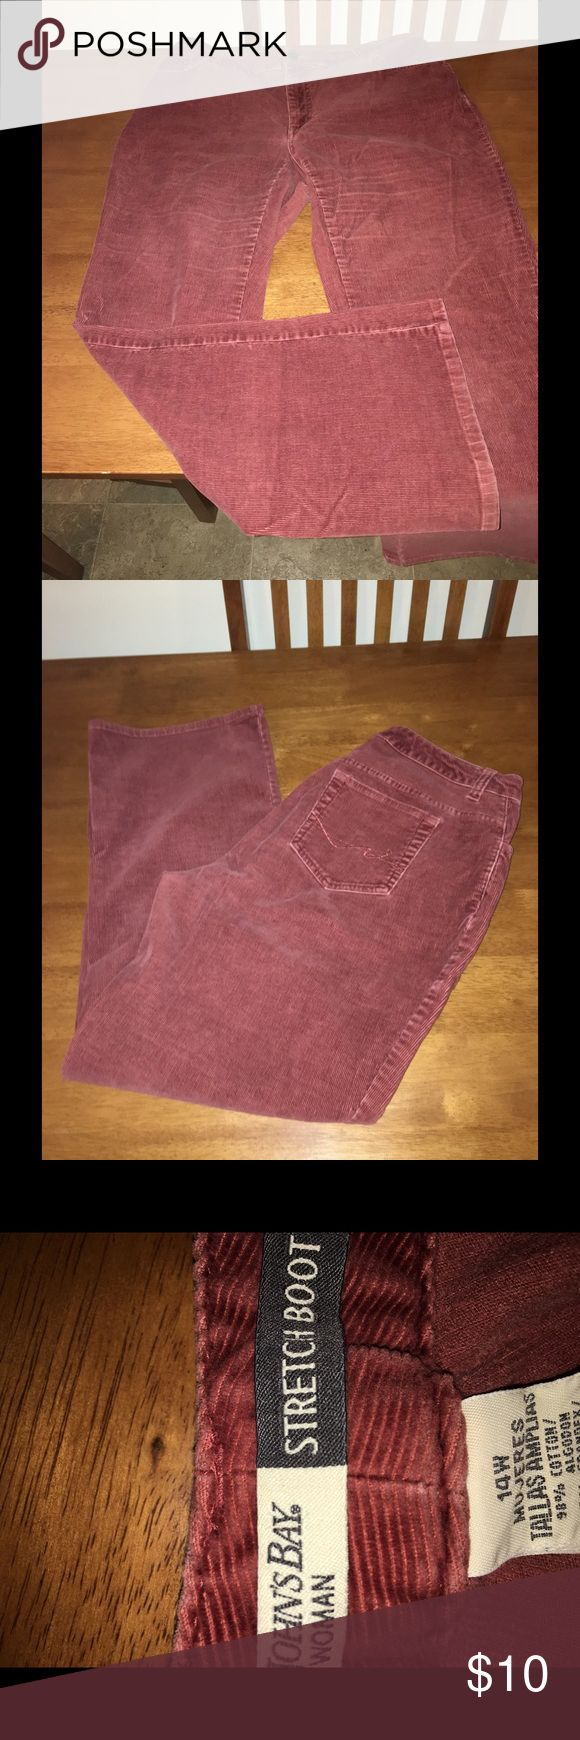 St. John's Bay Stretch Boot Corduroy Pants Sz 14 Rust colored corduroy pants.  Stretch Bootcut.  From St John's Bay.  Size 14.  Excellent condition.  Important:   All items are freshly laundered as applicable prior to shipping (new items and shoes excluded).  Not all my items are from pet/smoke free homes.  Price is reduced to reflect this!   Thank you for looking! St. John's Bay Pants Boot Cut & Flare